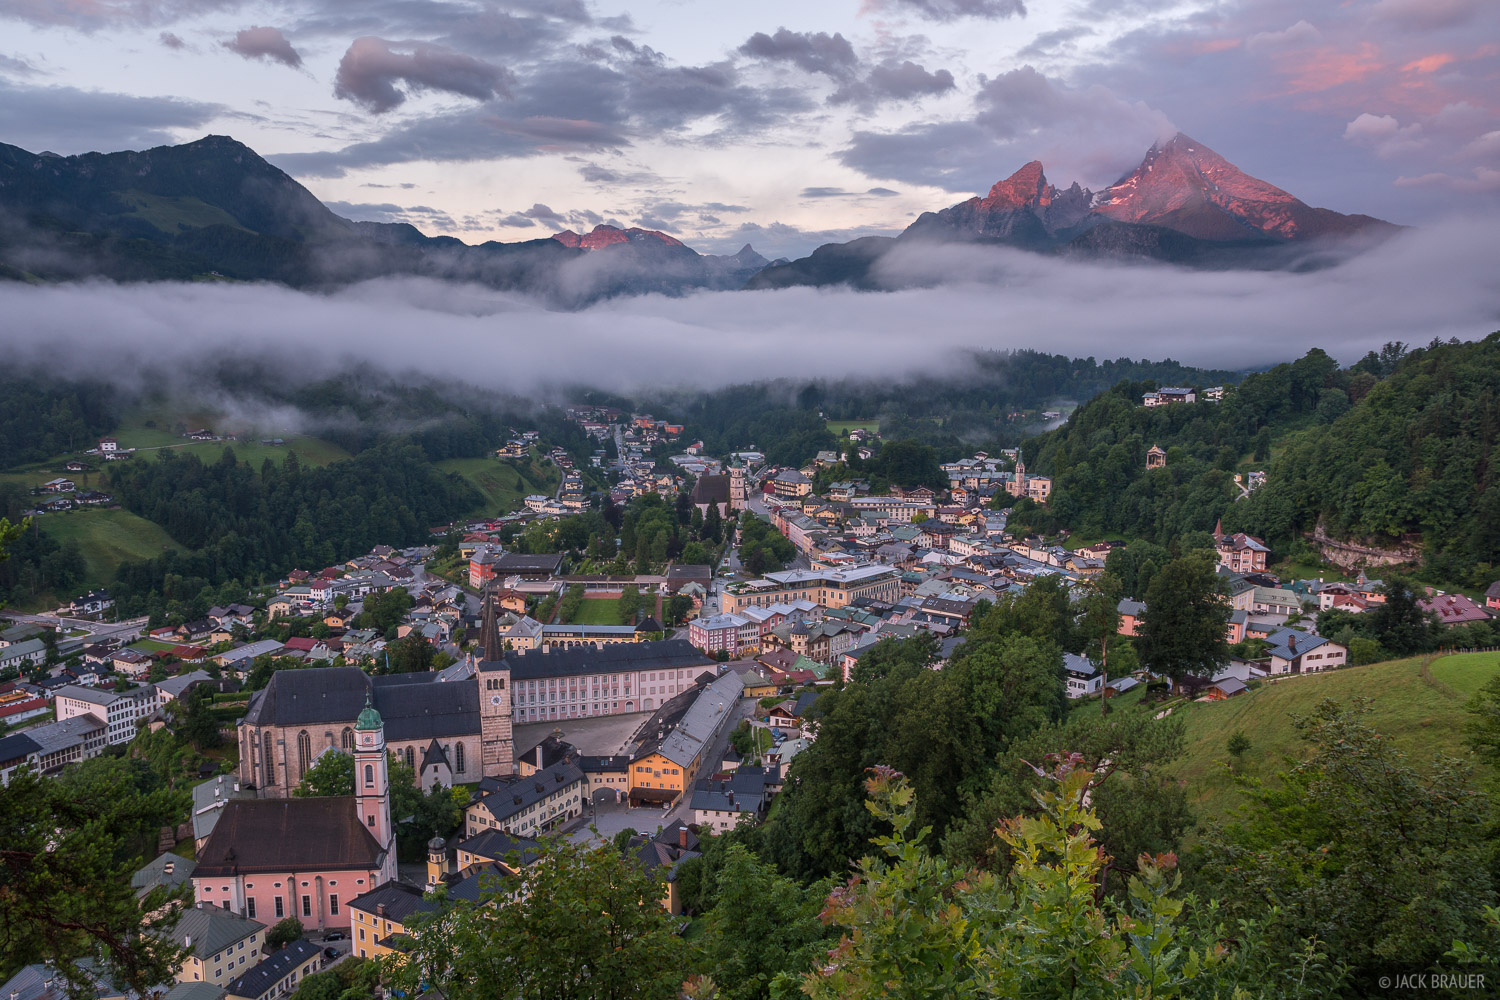 As rainy weather clears off, sunrise light illuminates Watzmann over the town of Berchtesgaden.